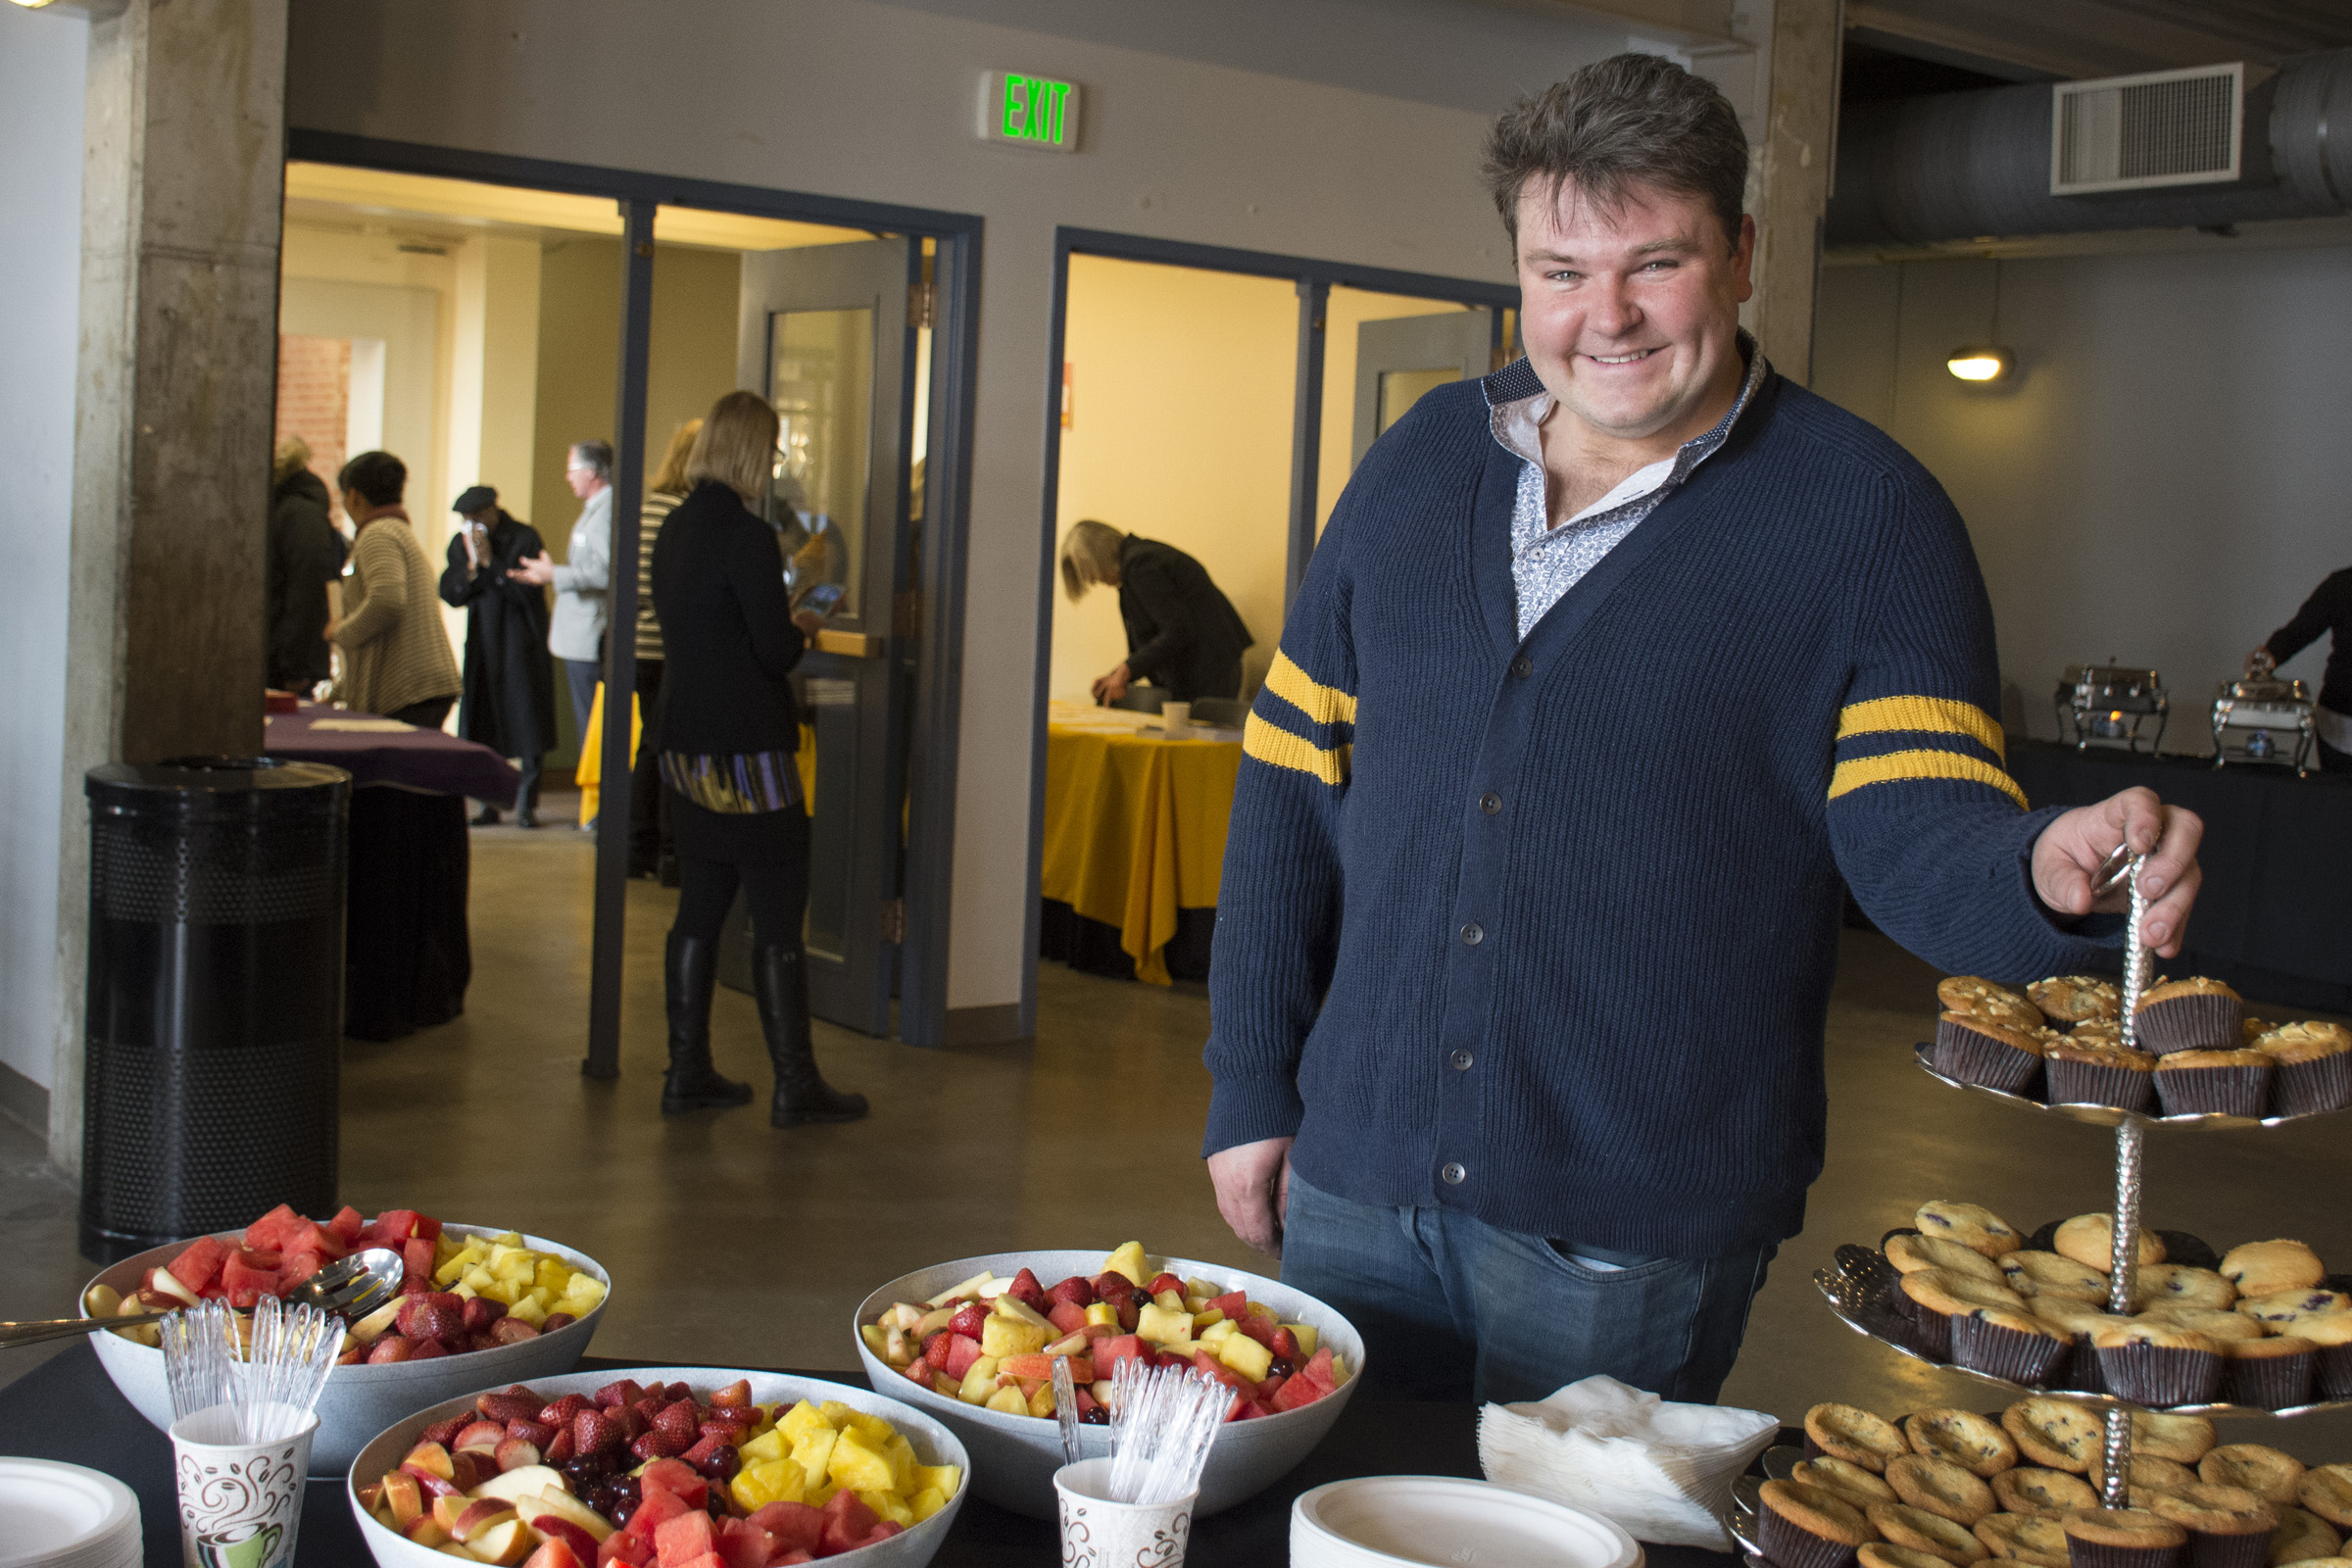 caterer stands next to table of breakfast food